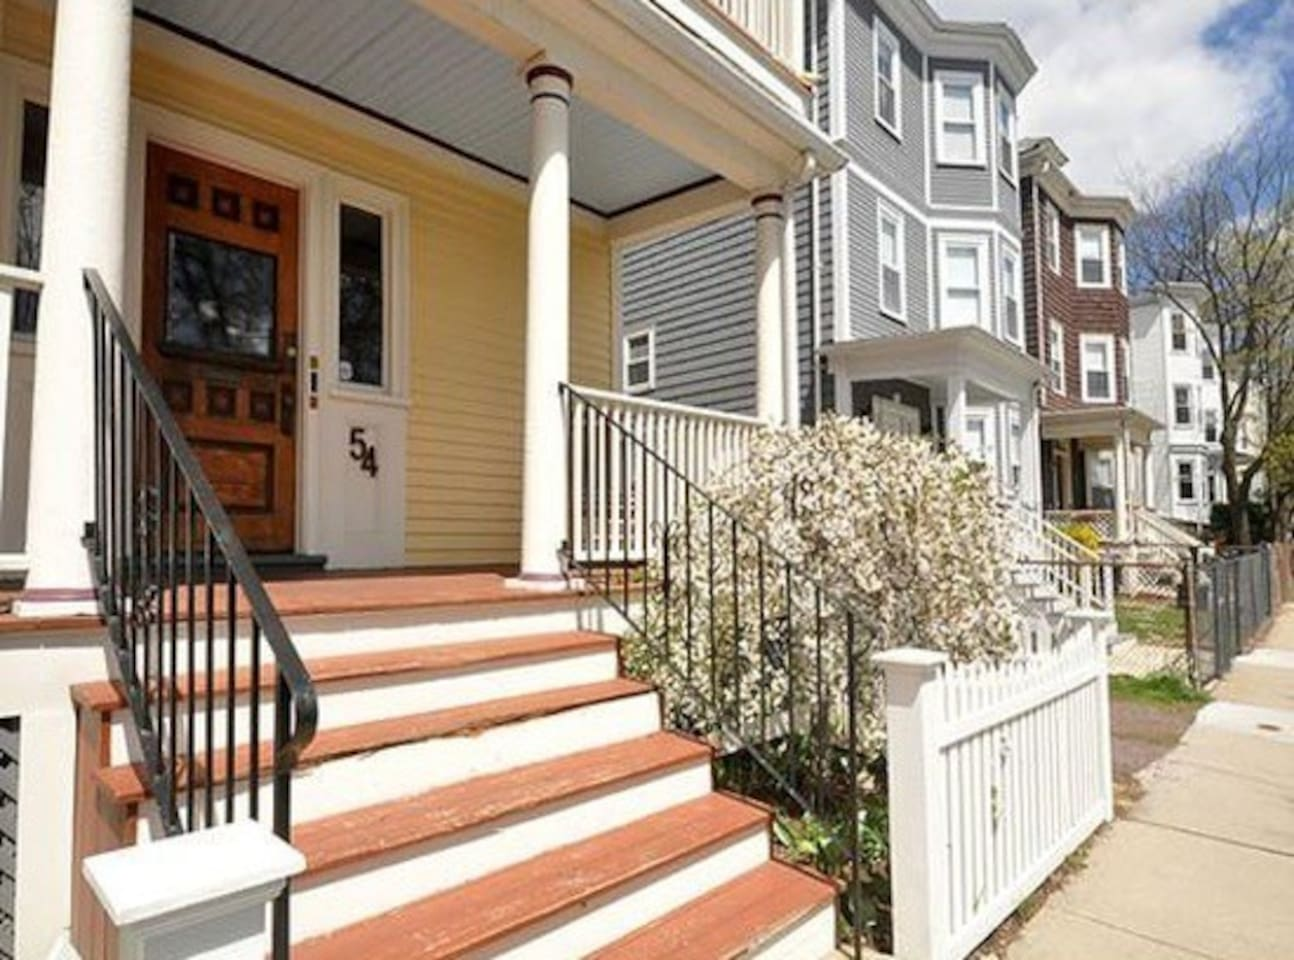 The home is located in a quiet residential neighborhood with easy train access to downtown Boston.